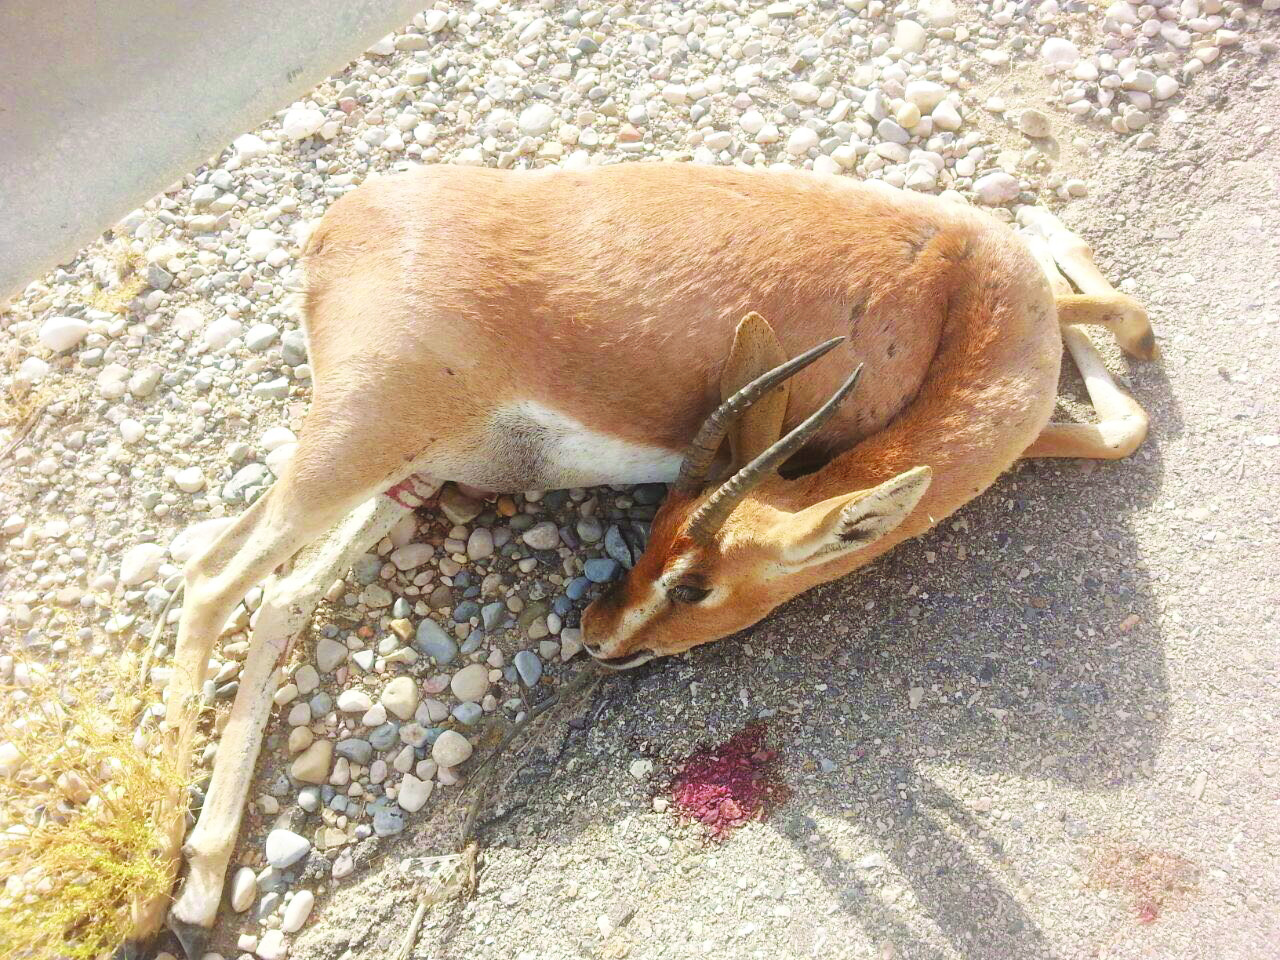 Two arrested for killing a deer in Oman